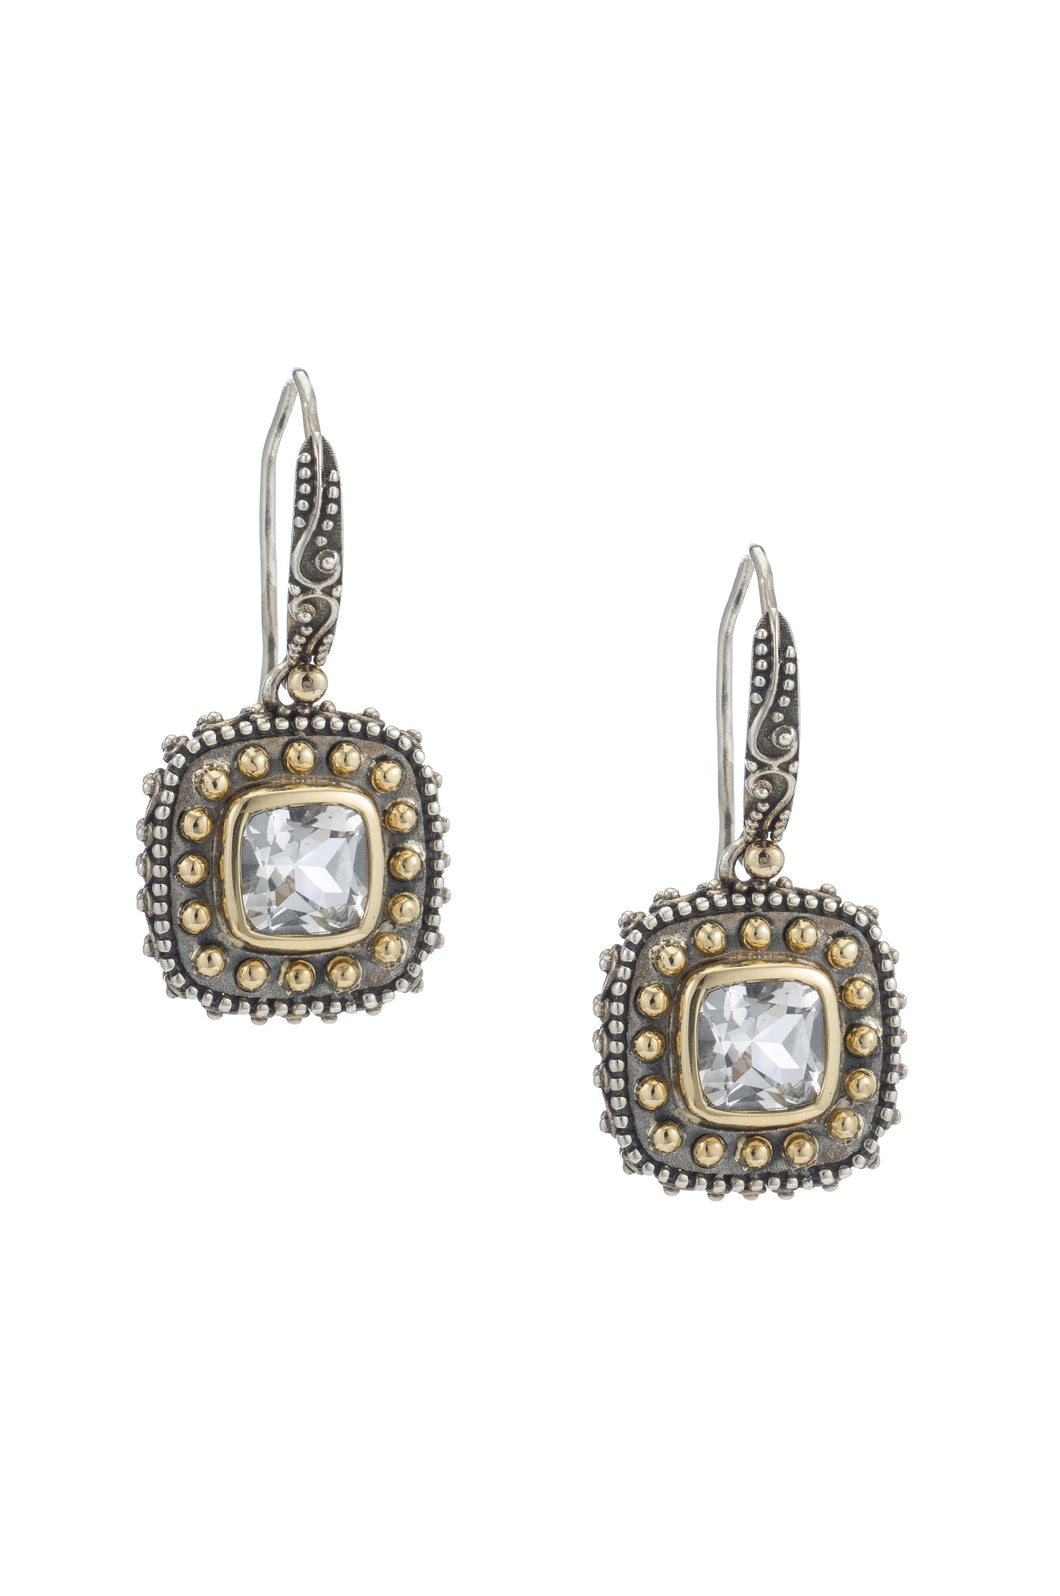 Tiffany Square Beaded Earrings - earring - KIR Collection - designer sterling silver jewelry